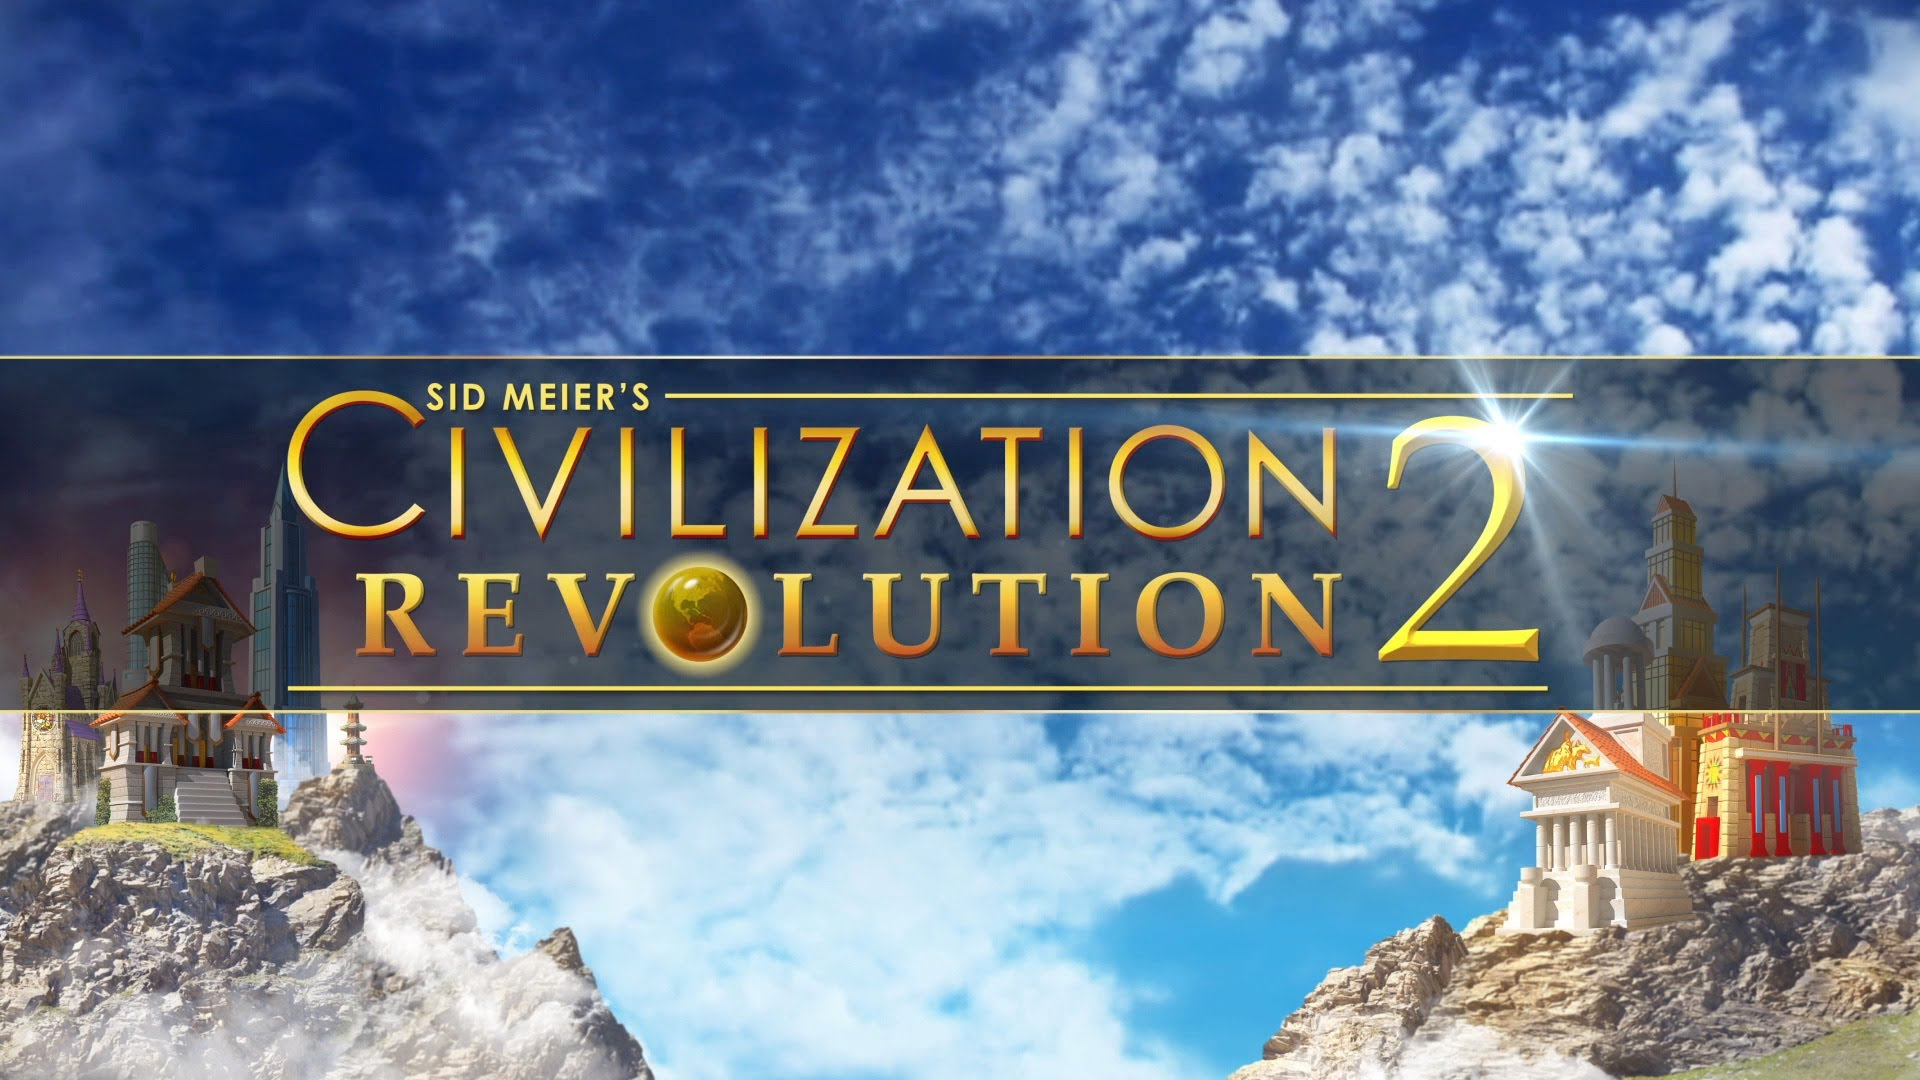 Civilization Revolution 2 game for iPhone & iPad 2018